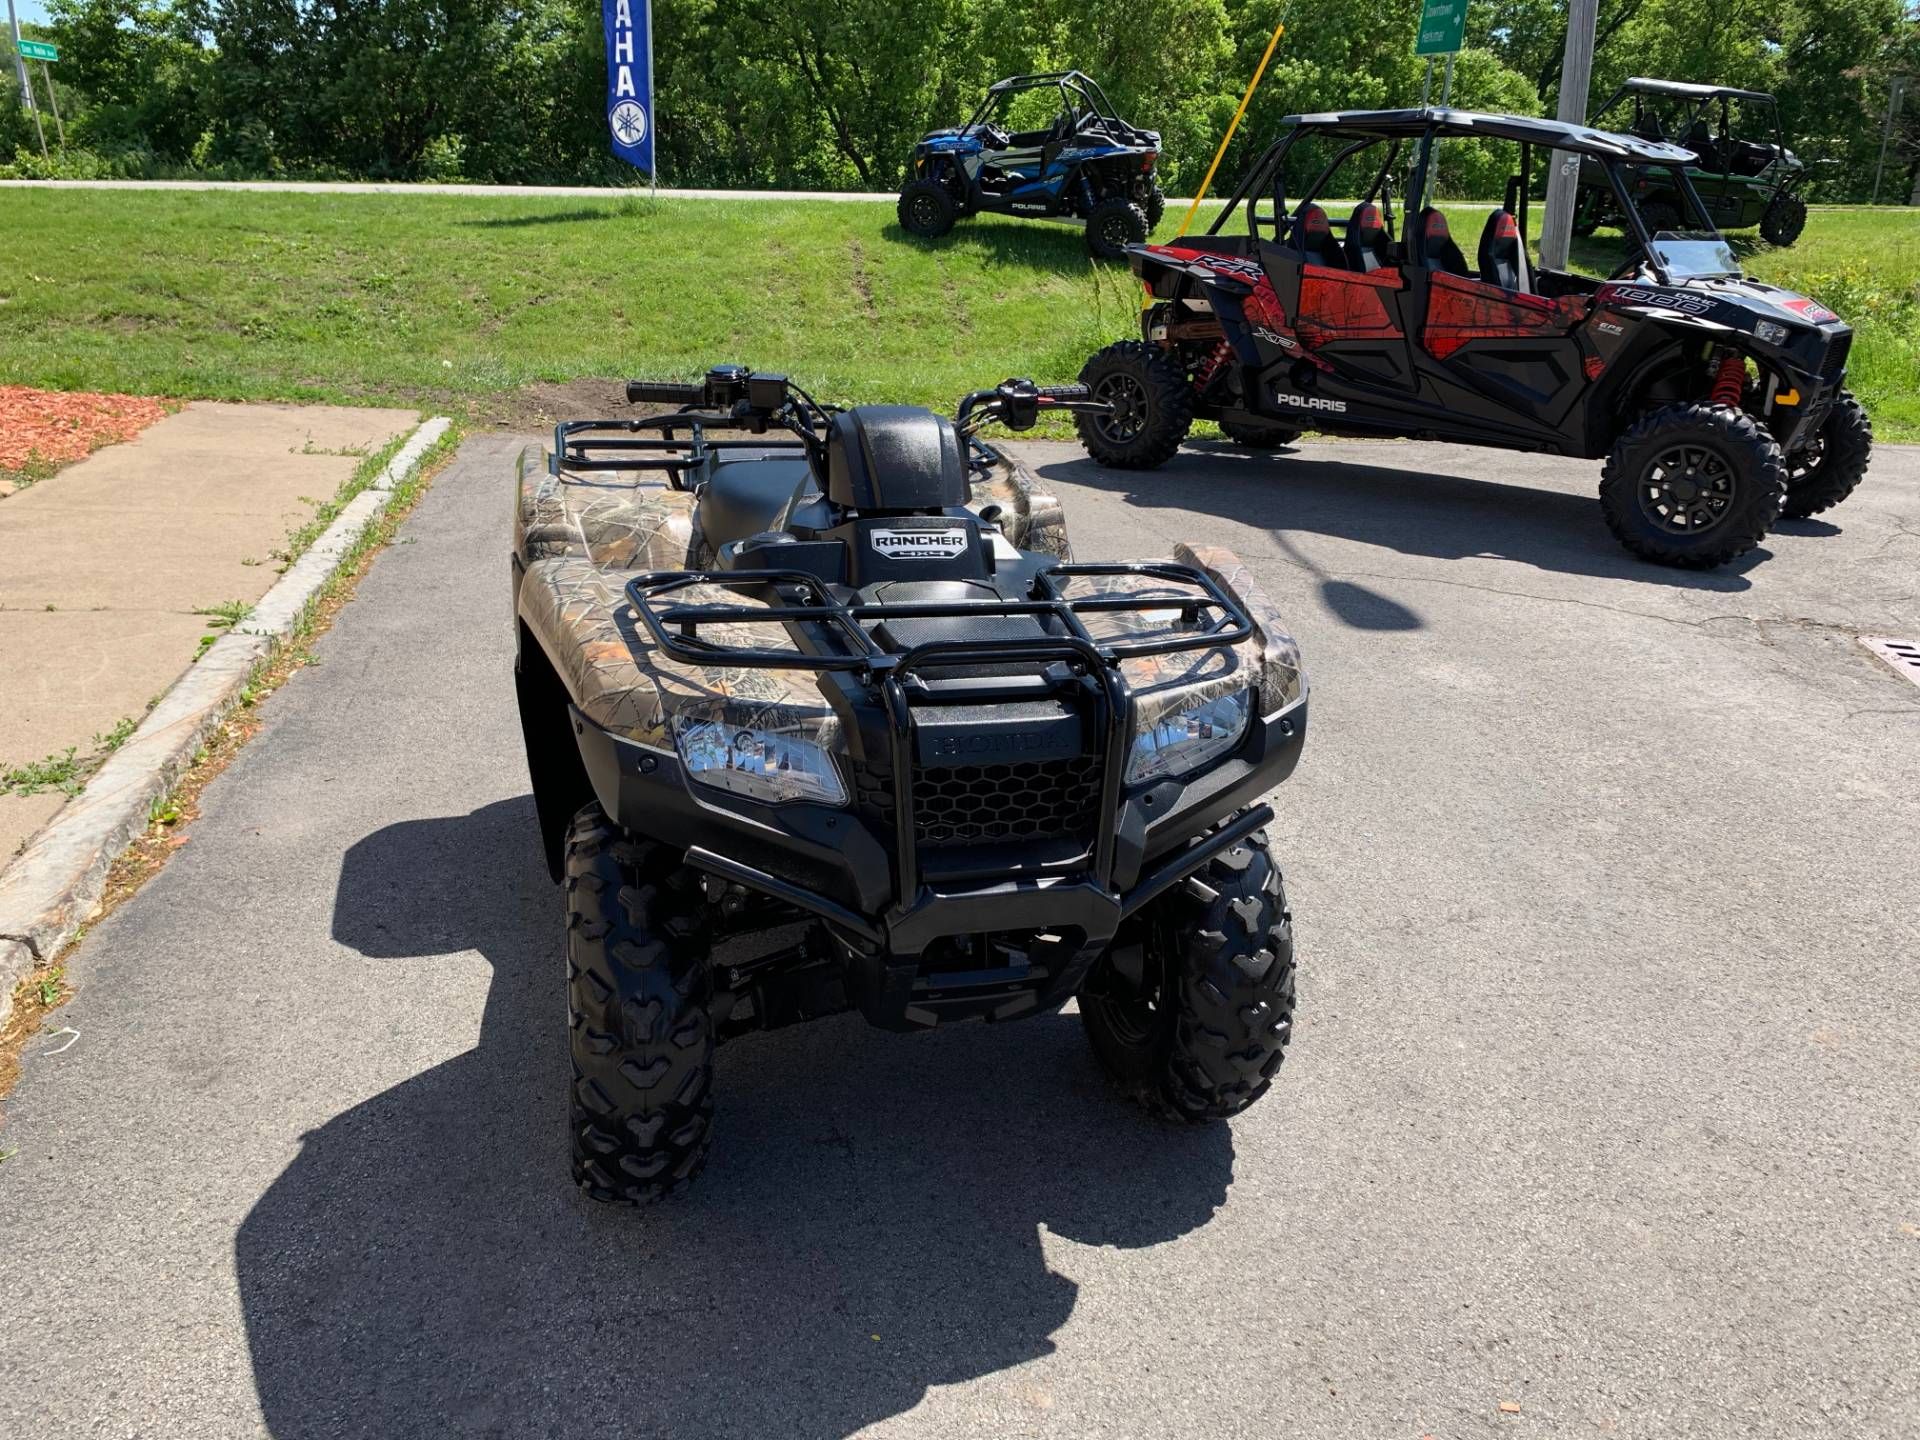 2017 Honda FourTrax Rancher 4x4 in Herkimer, New York - Photo 8